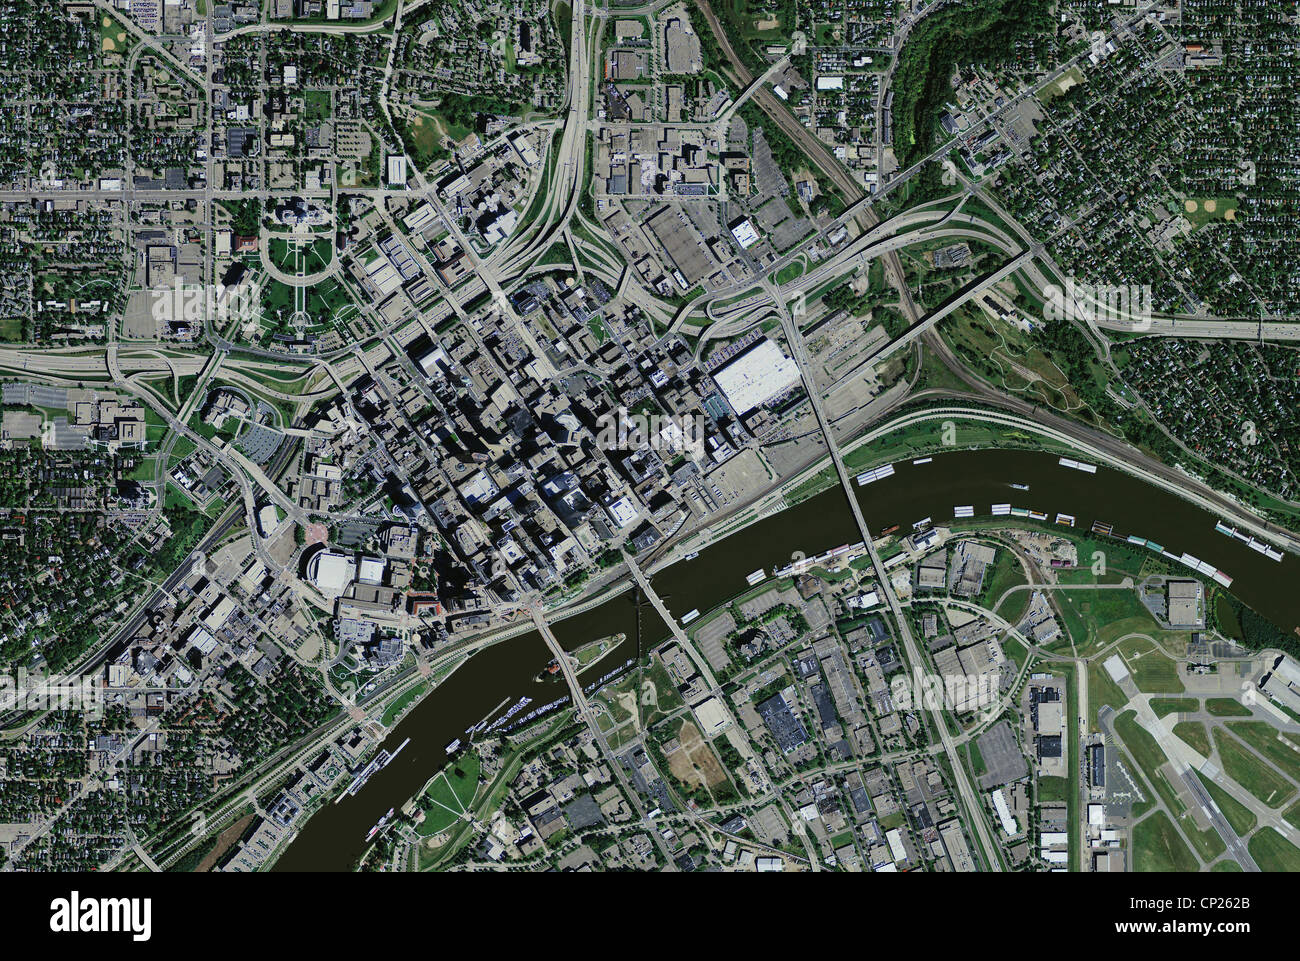 aerial photo map of St Paul, Minnesota - Stock Image